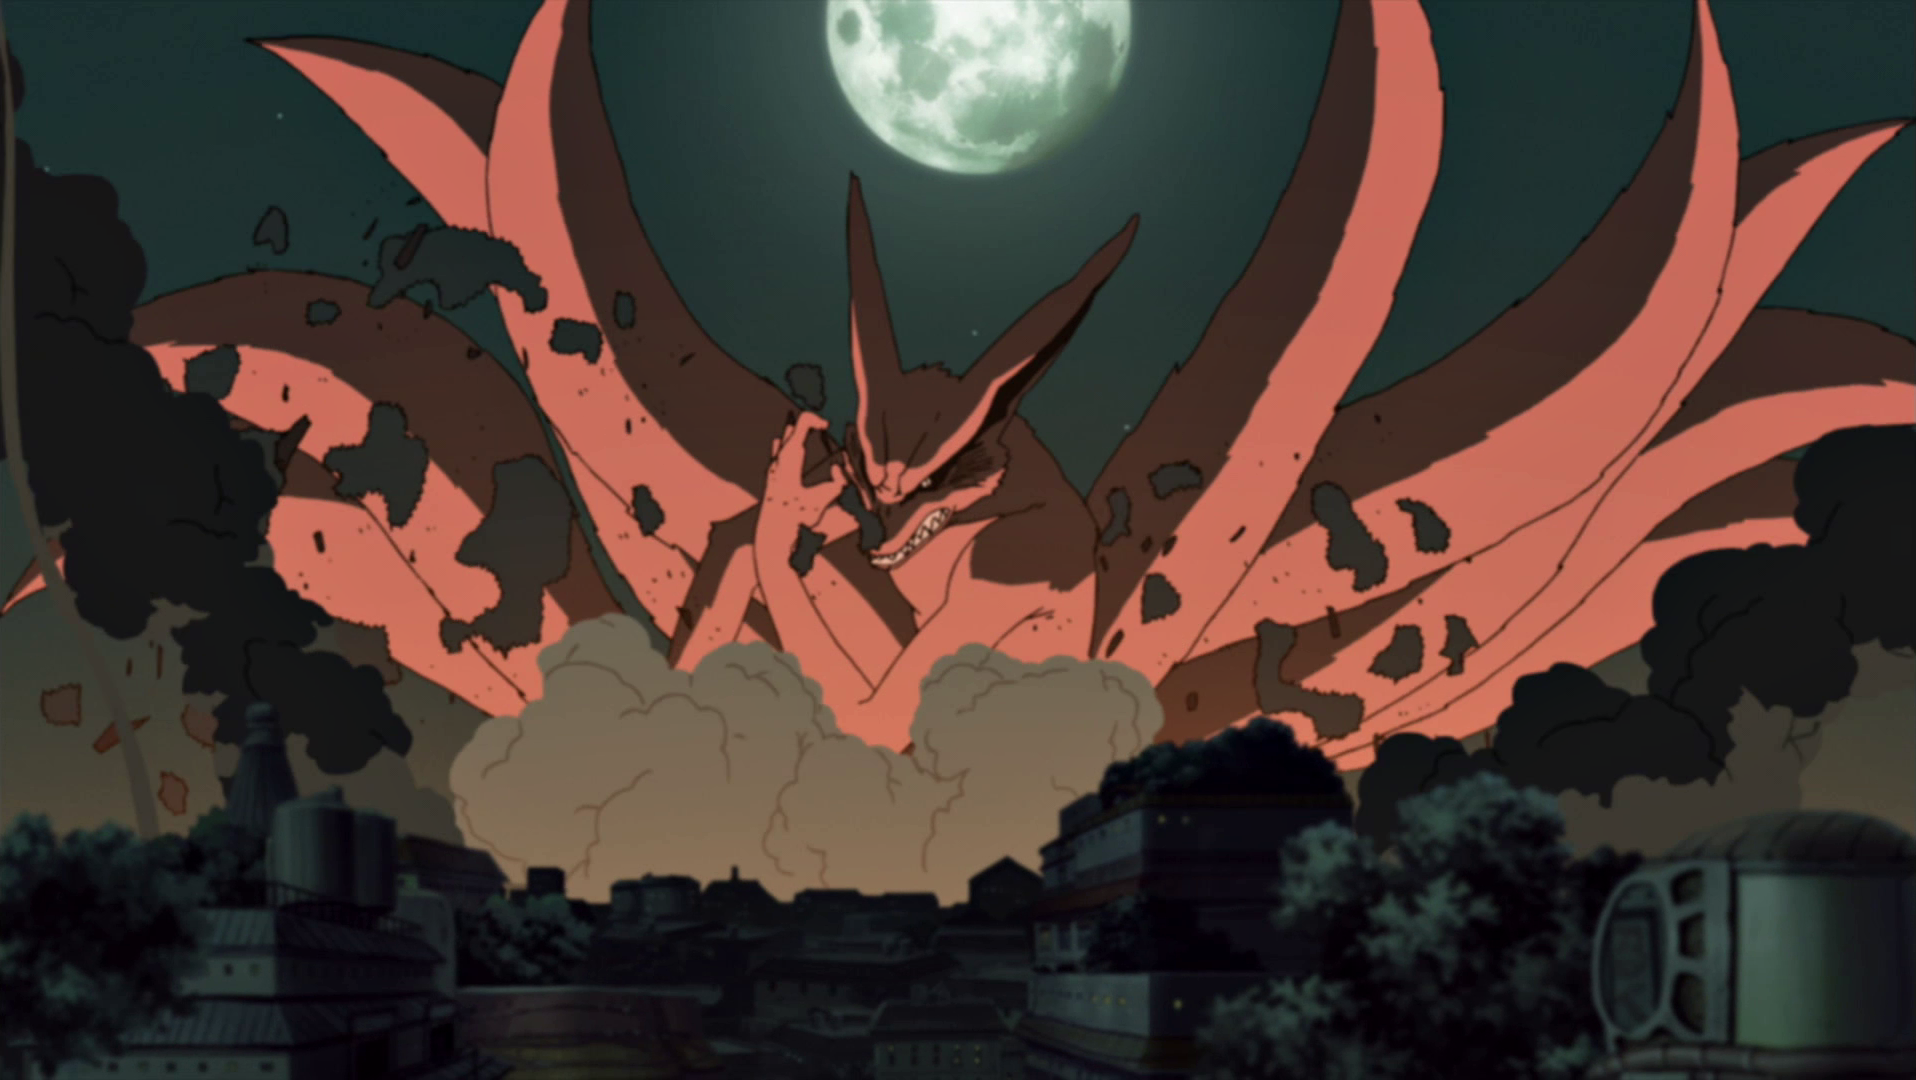 http://images1.wikia.nocookie.net/__cb20130722000237/naruto/pt-br/images/2/2d/O_ataque_da_Kyubi.png